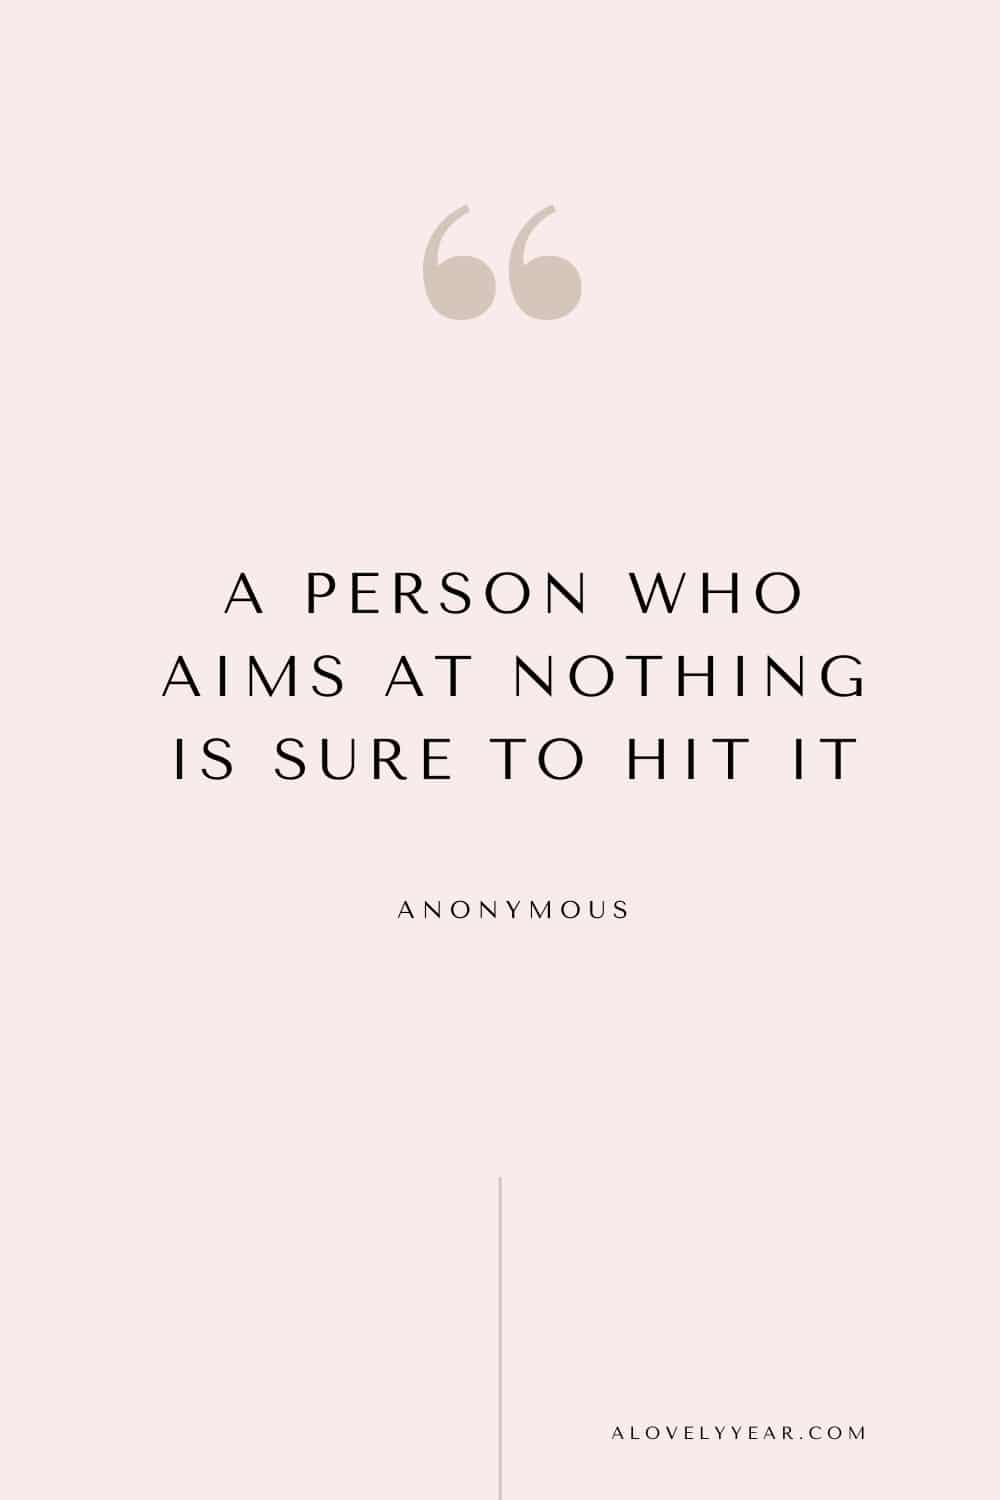 quote - A person who aims at nothing is sure to hit it. – Anonymous